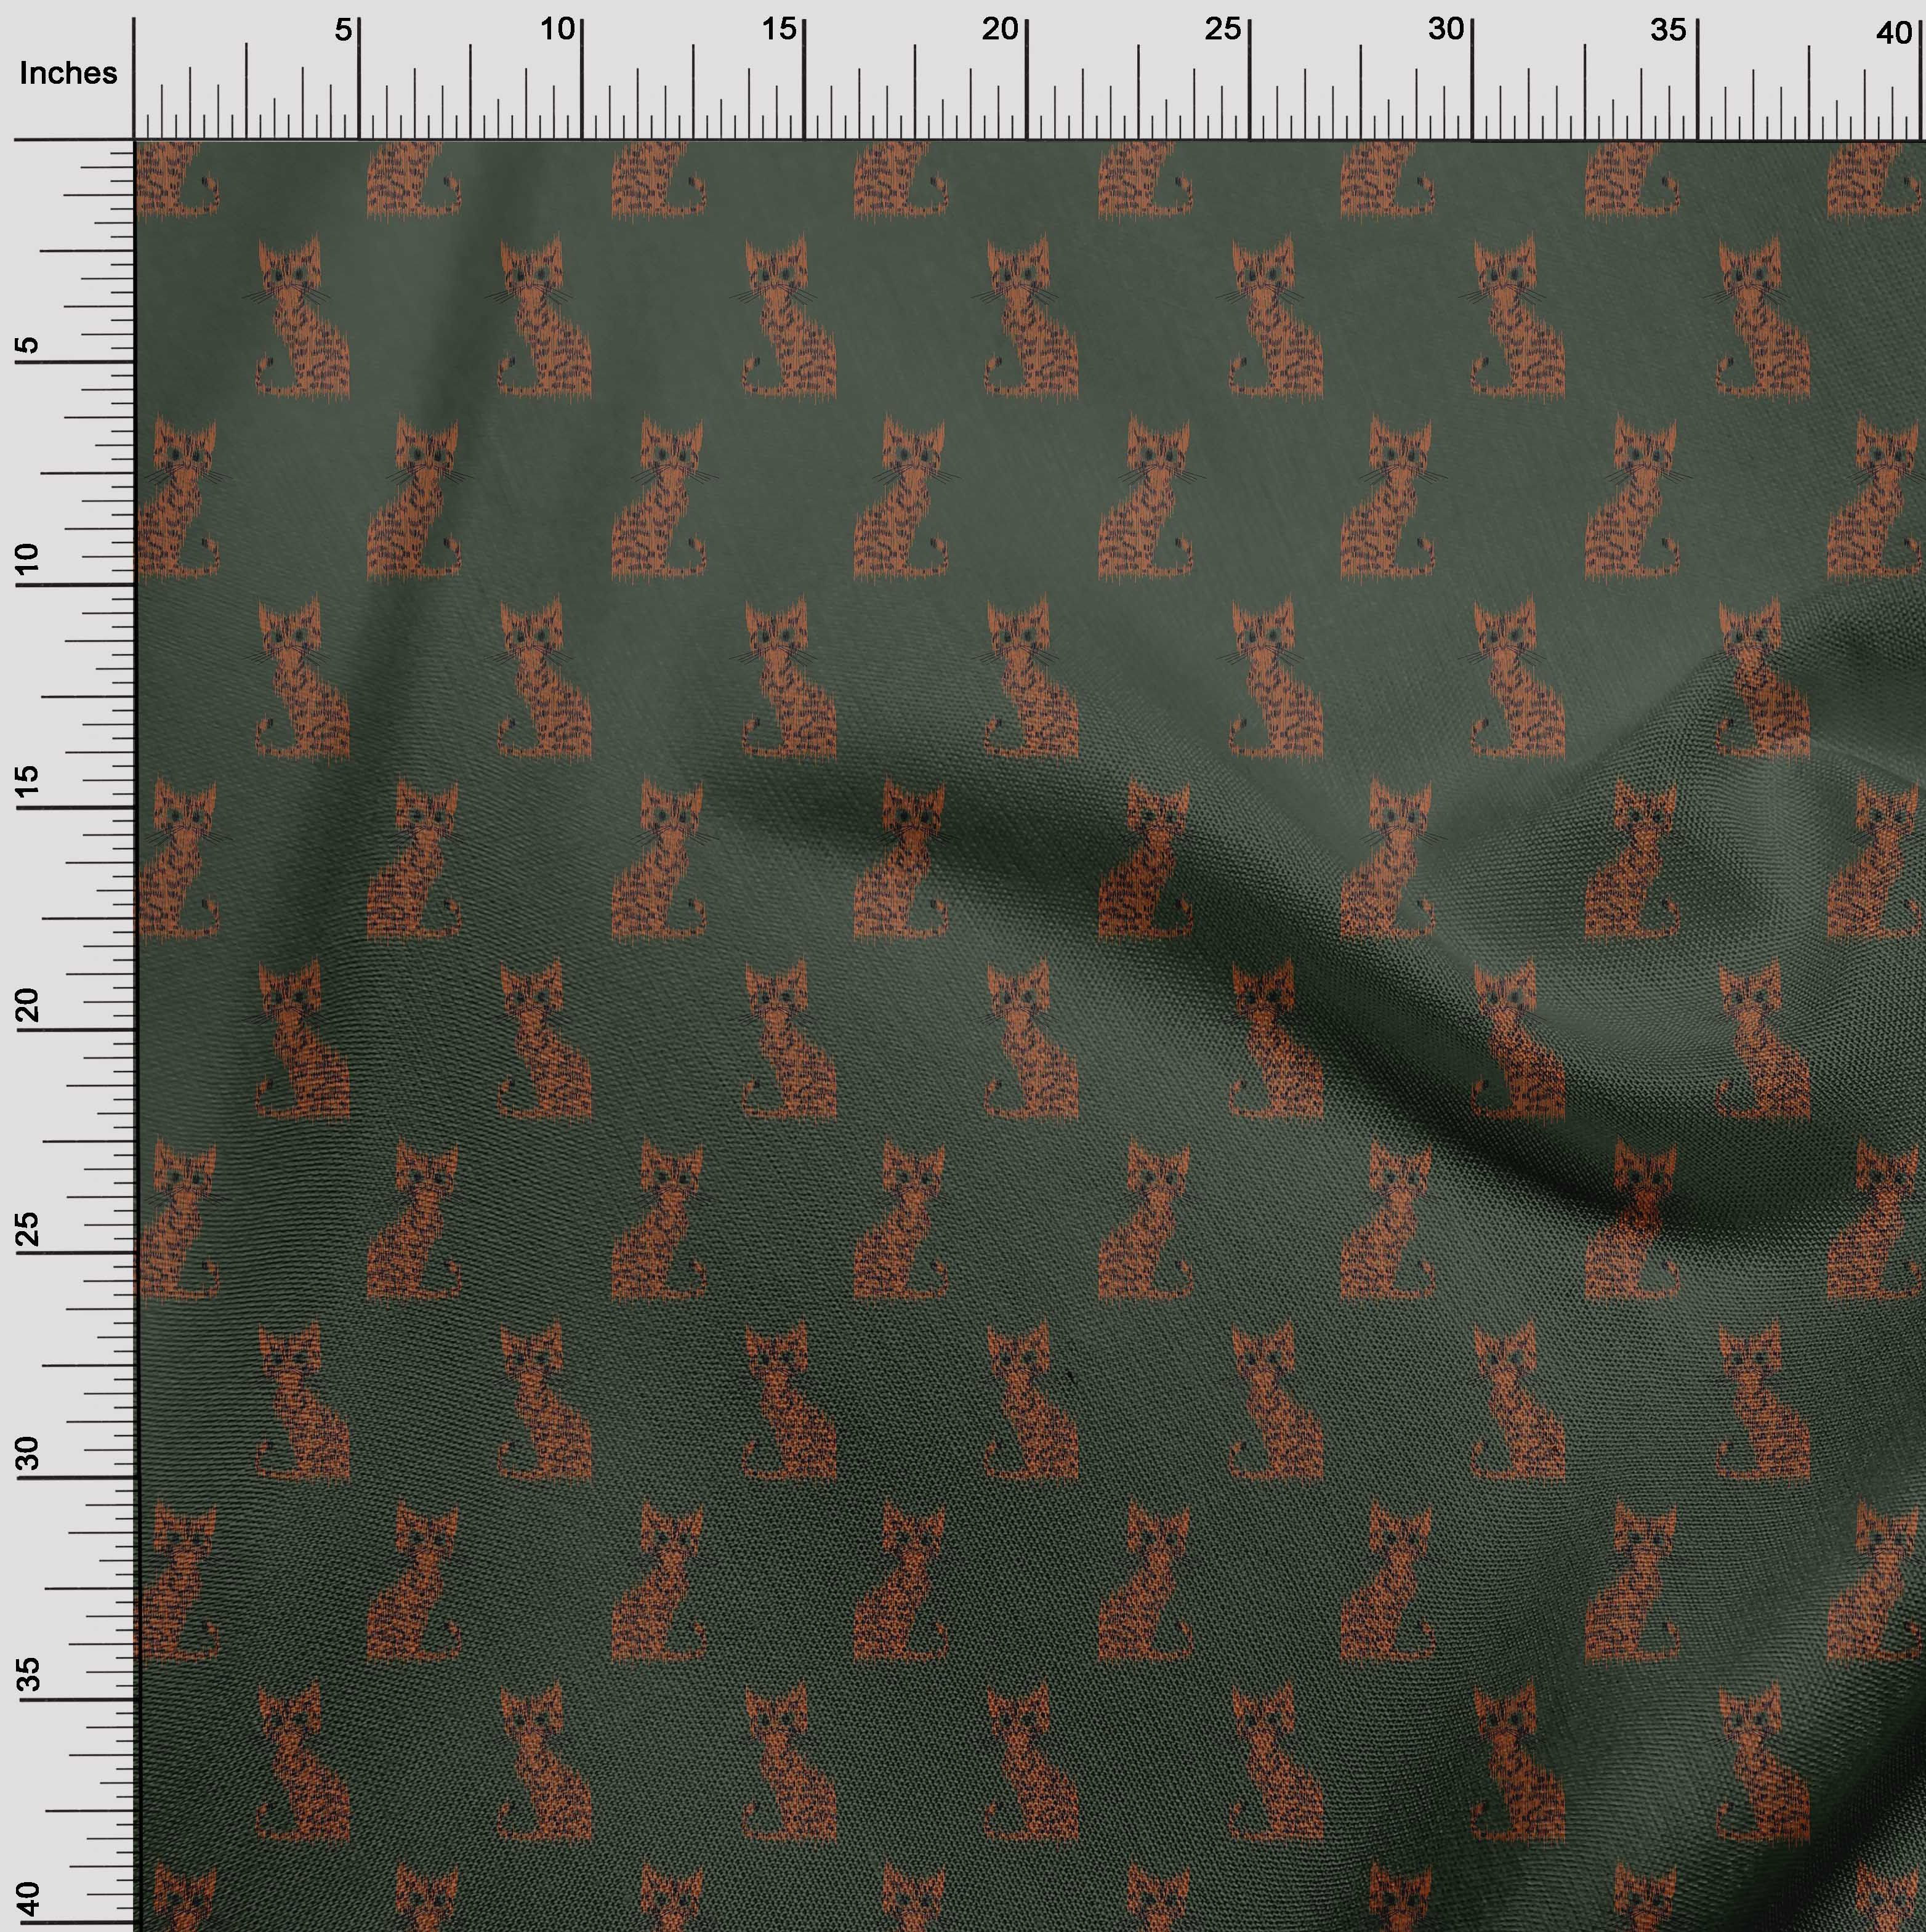 oneOone-Katze-Ikat-Printed-Craft-Fabric-By-The-Meter-IK-1203A-1 Indexbild 13